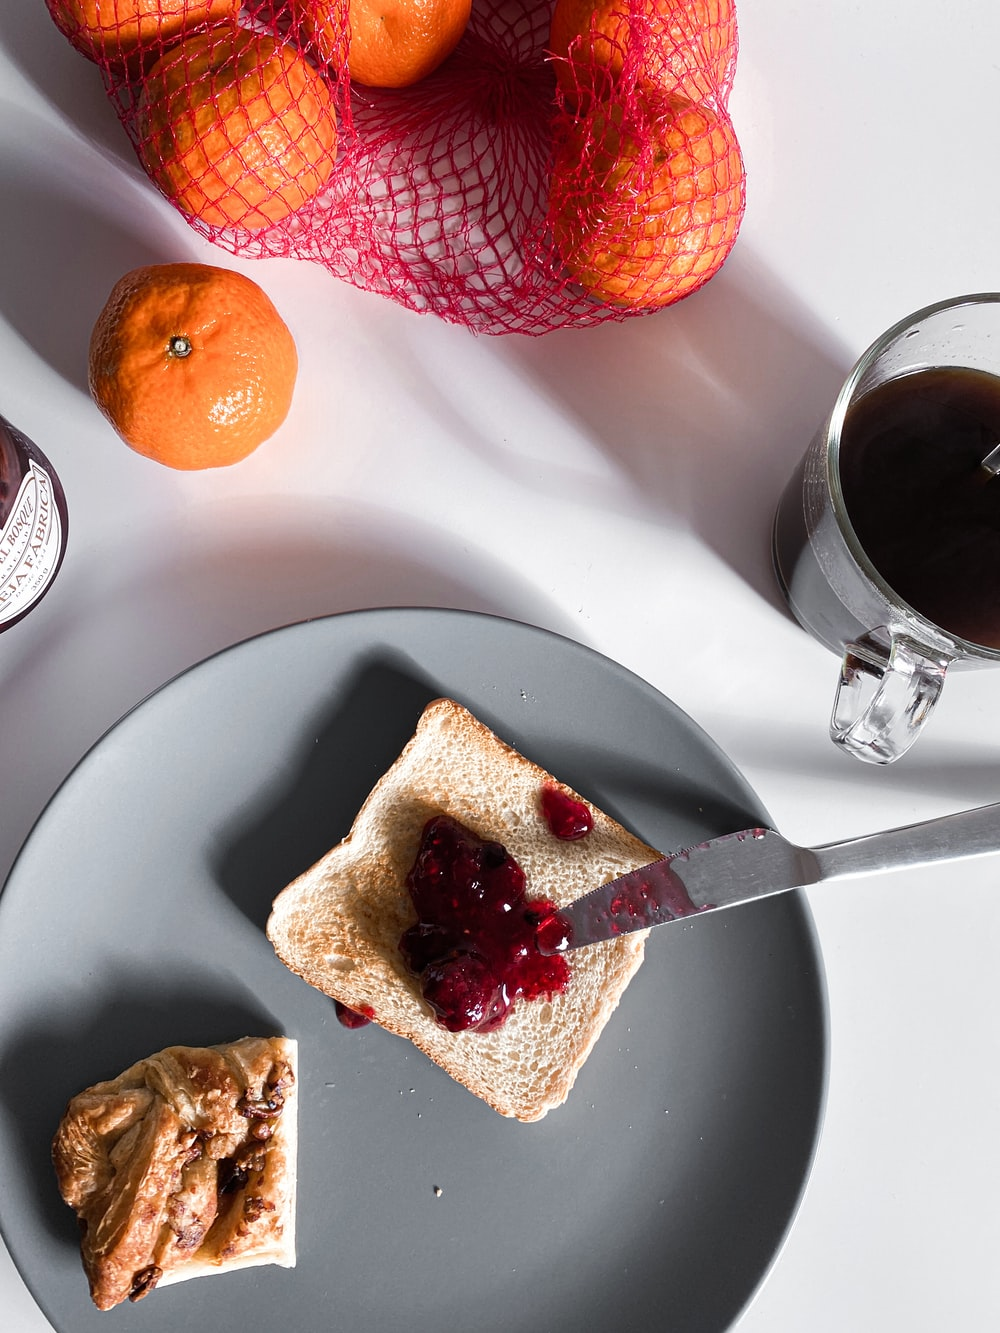 sliced bread on white ceramic plate beside clear drinking glass